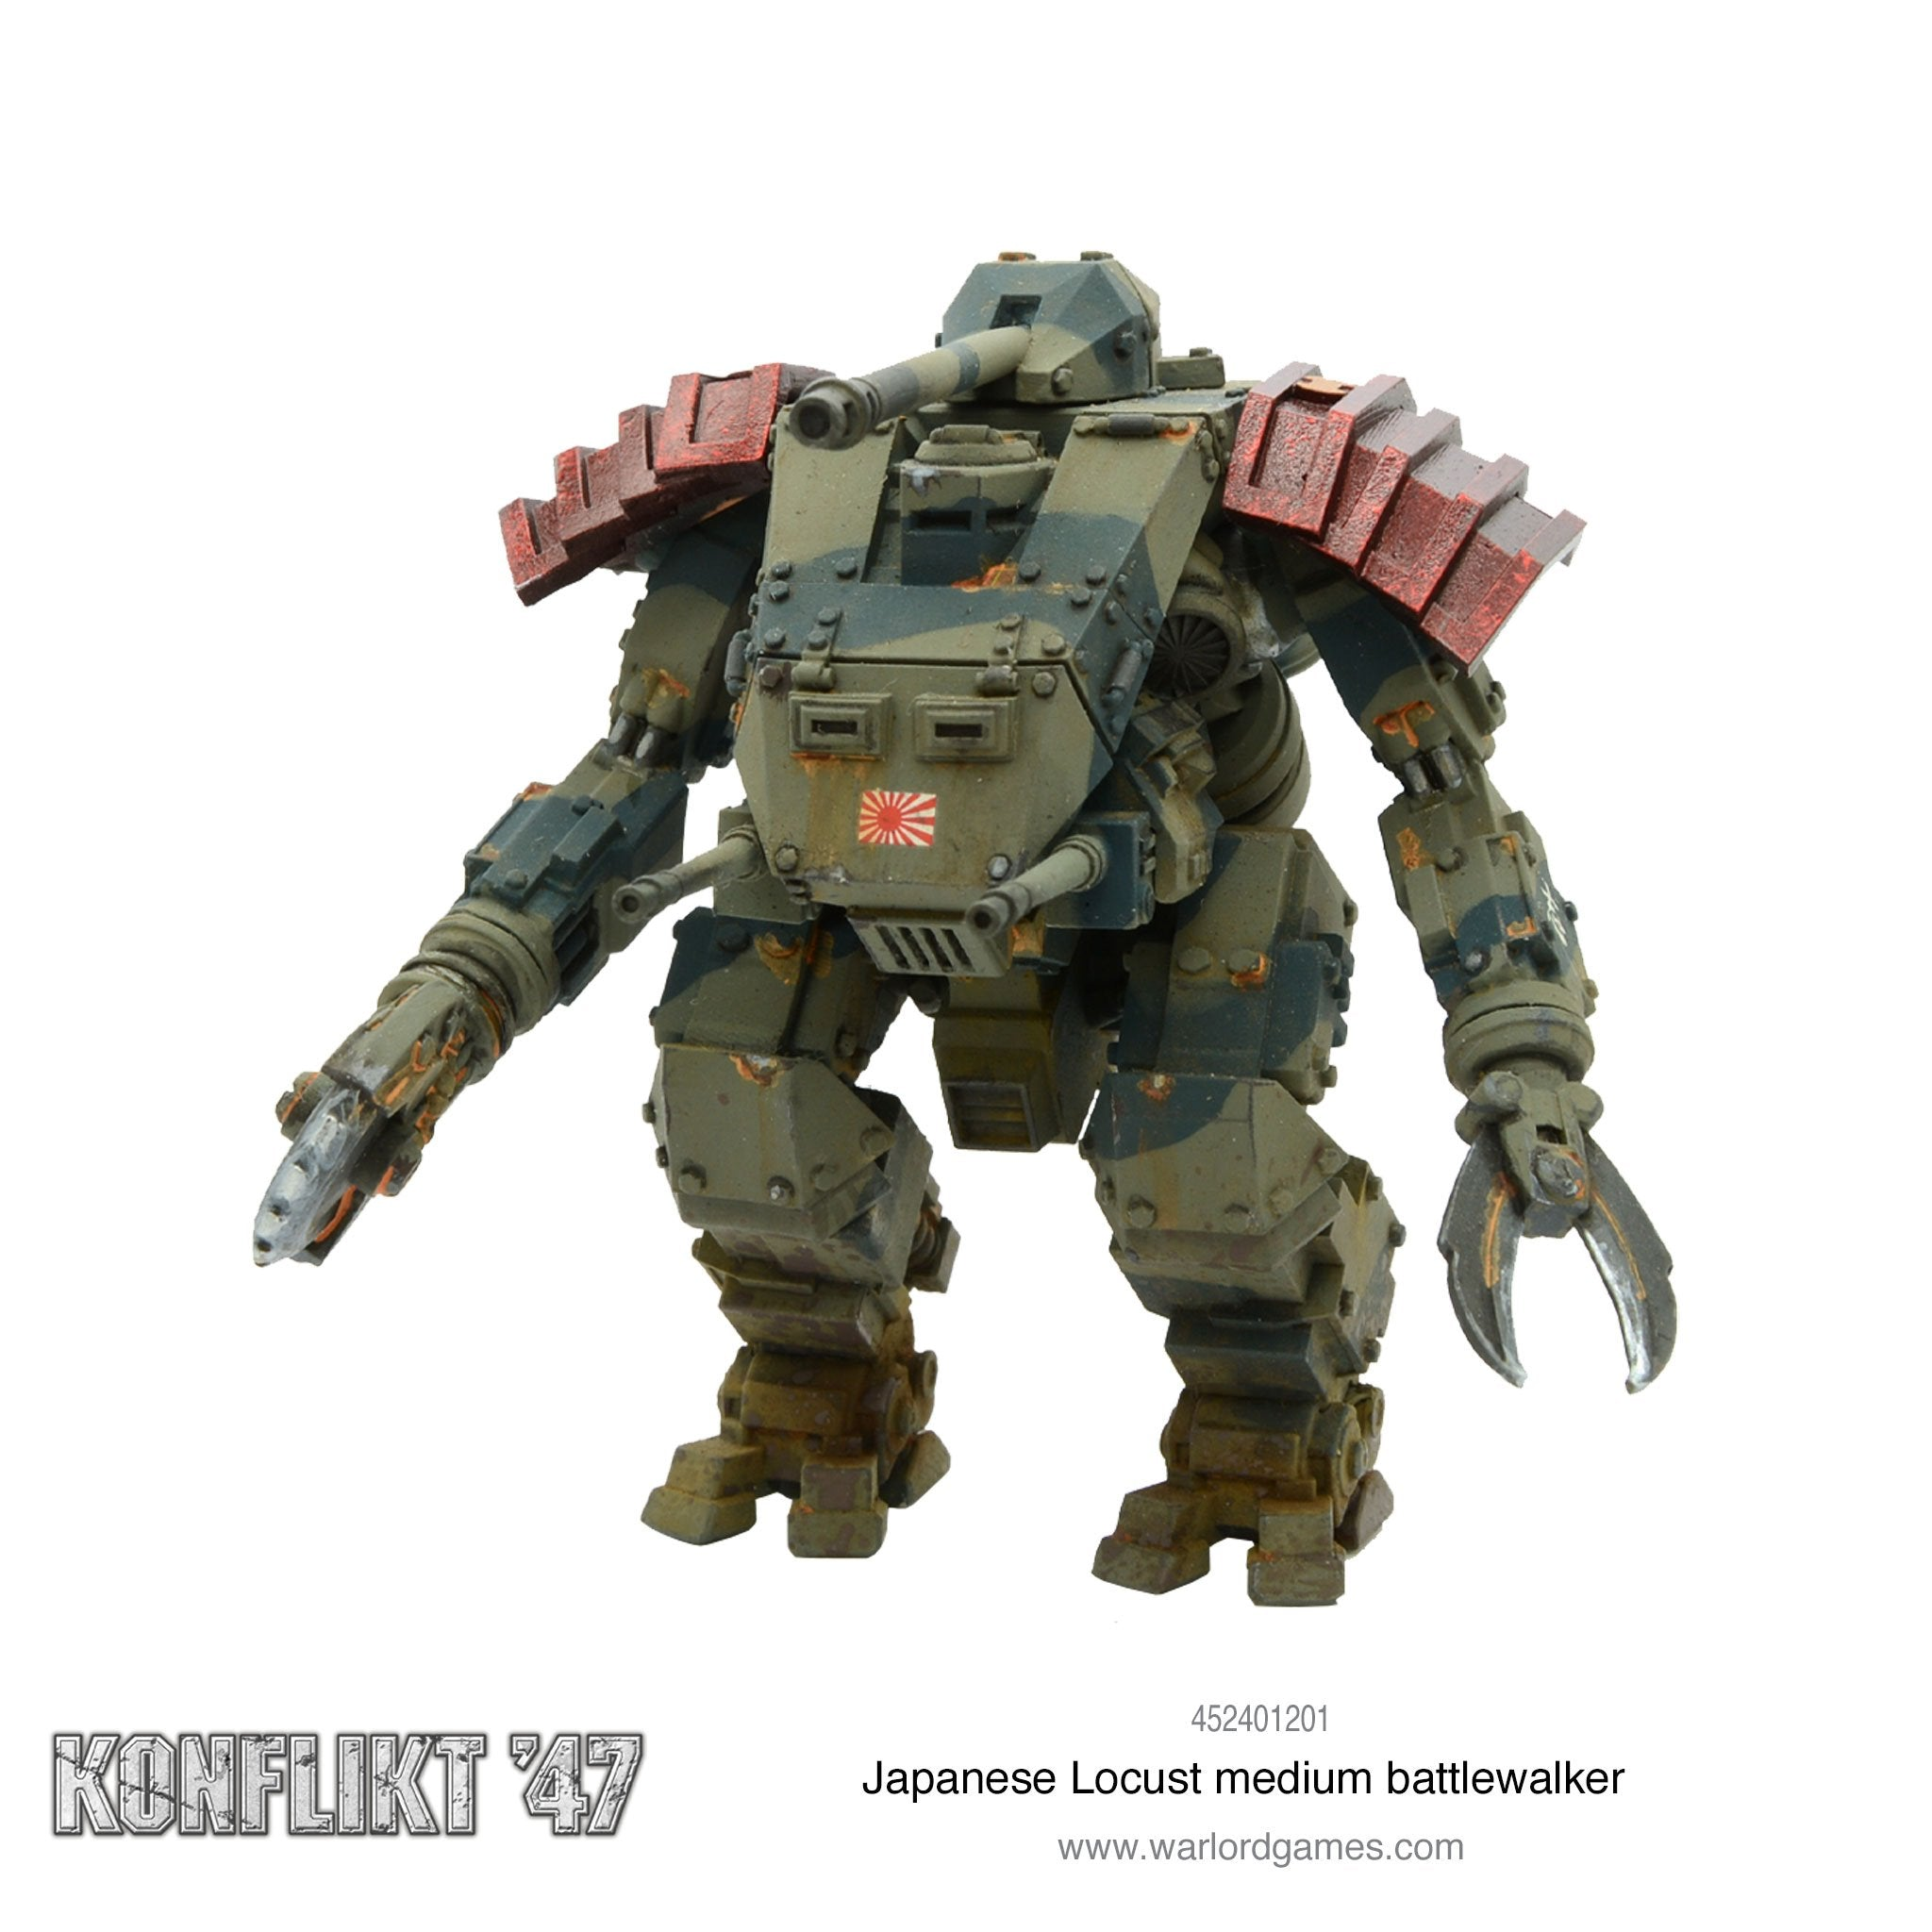 Japanese Locust medium battlewalker